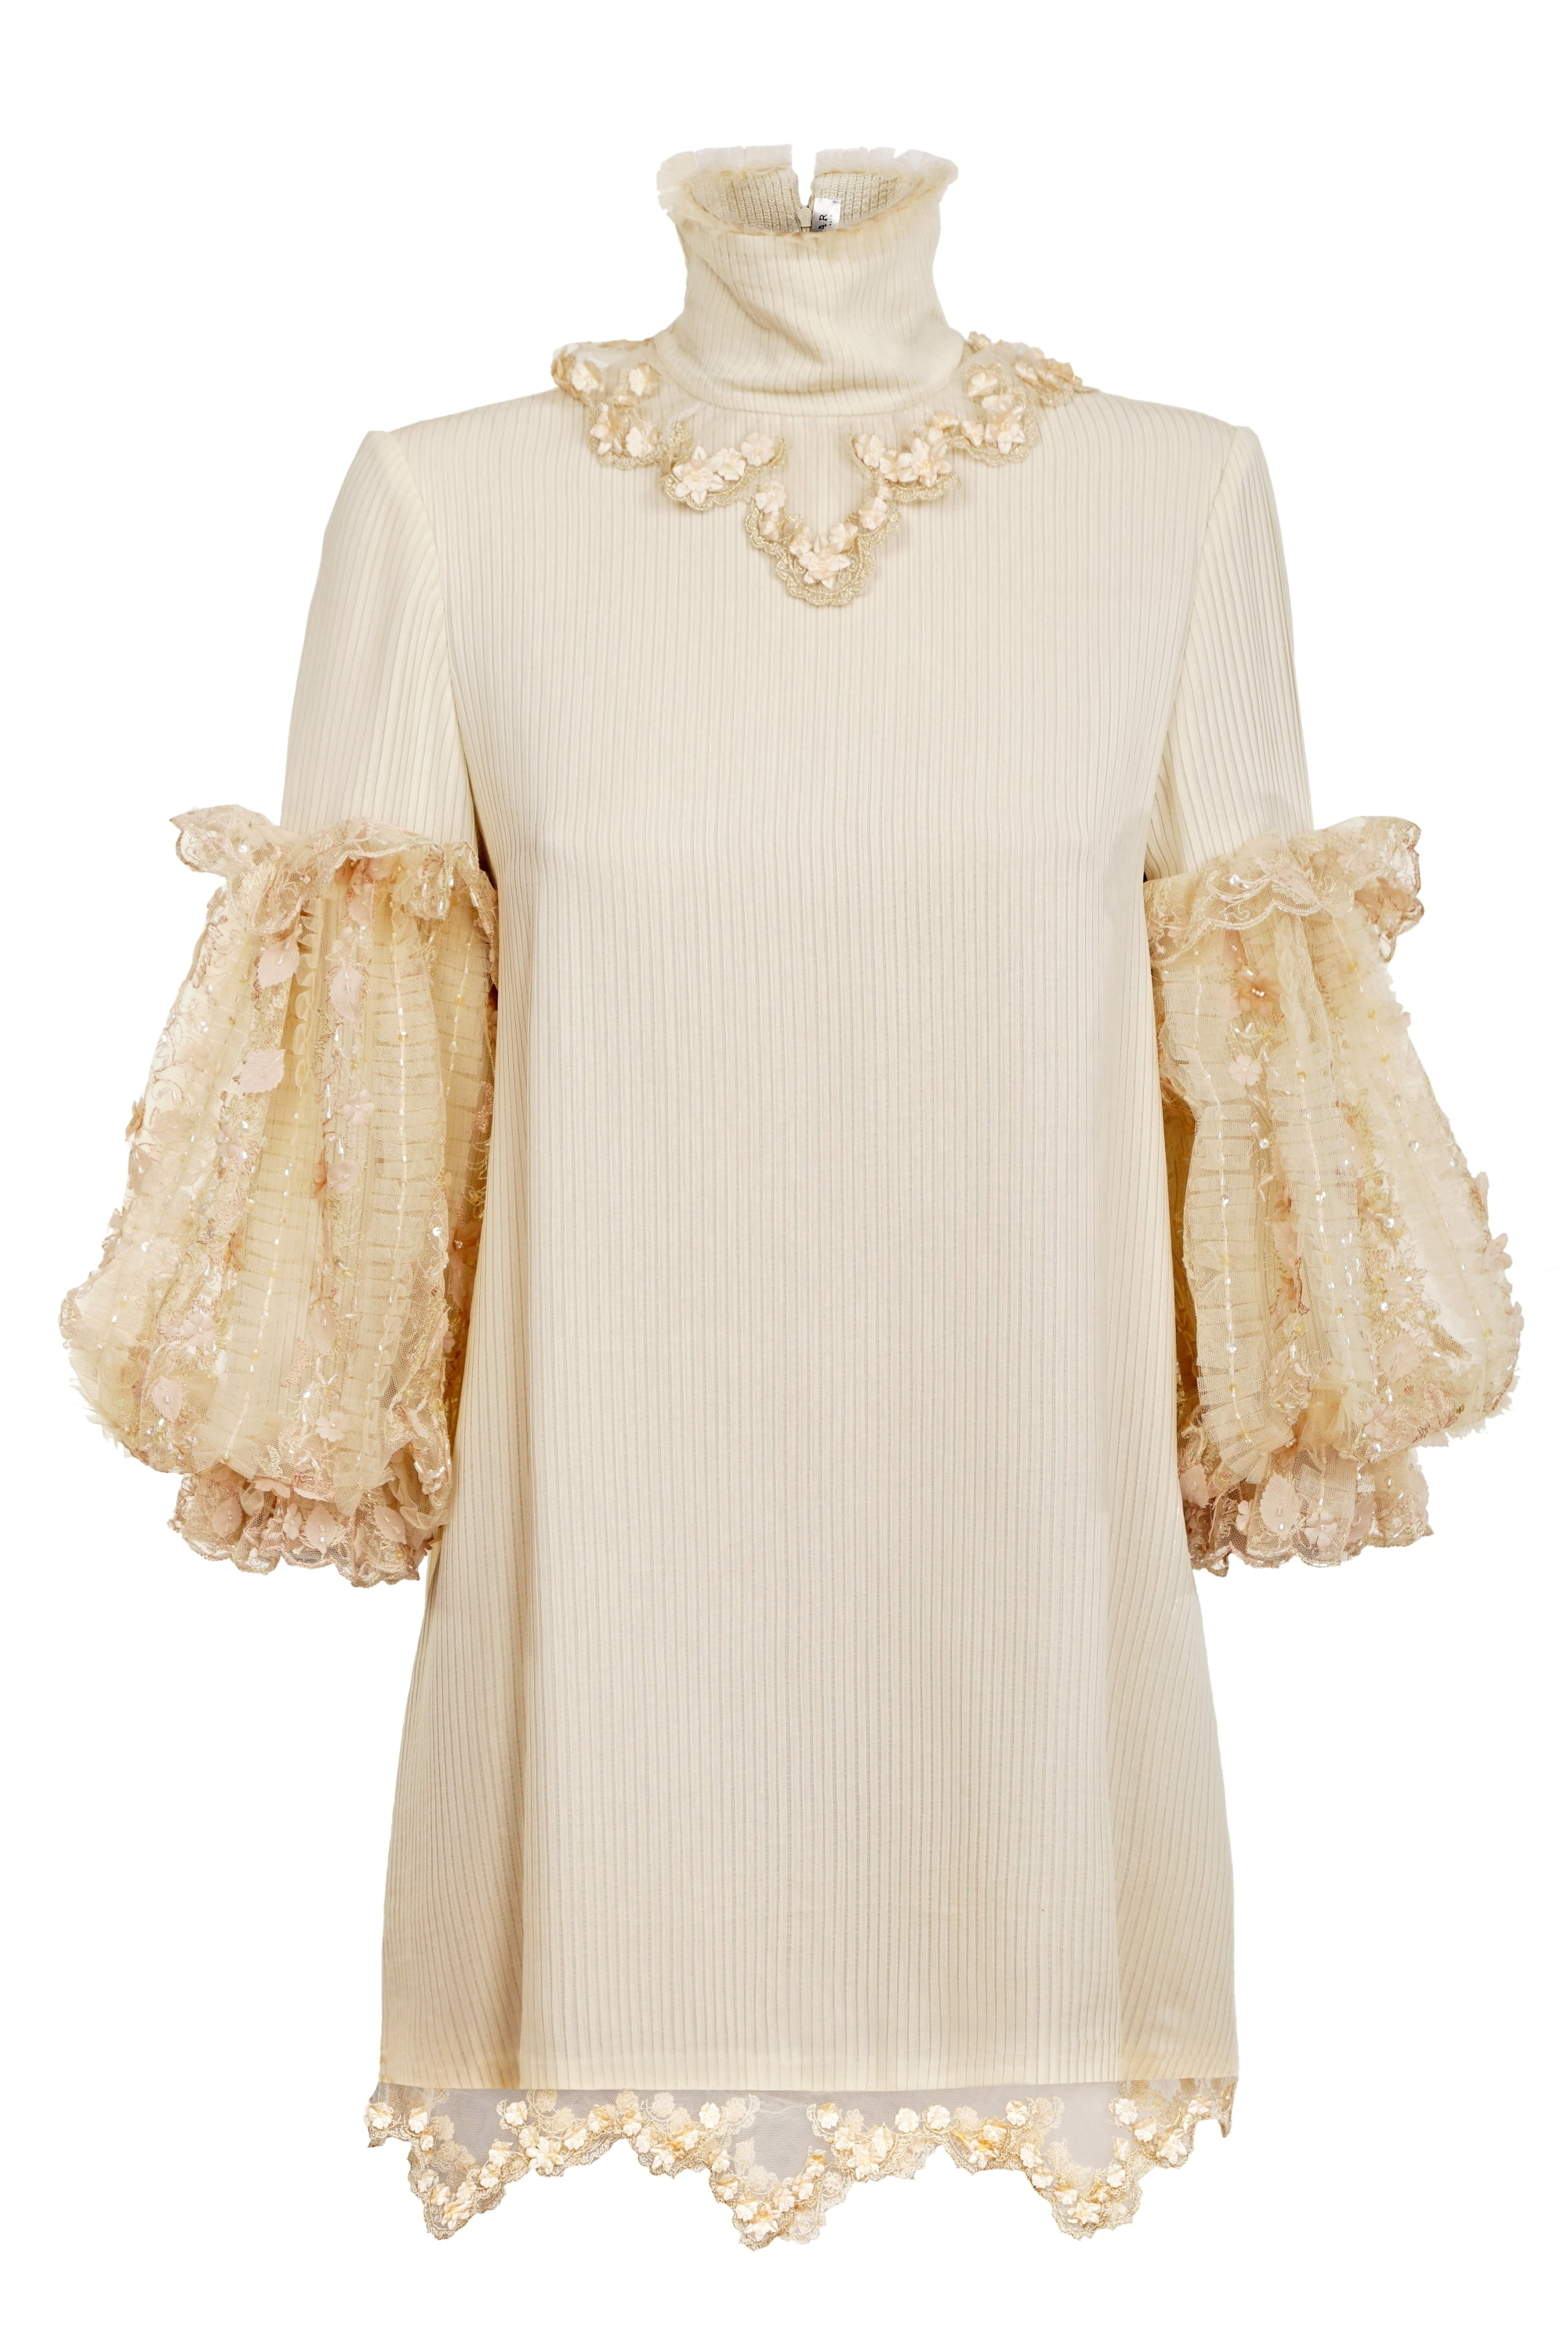 KAPOK CREAM DRESS WITH LACE BOUFFANT SLEEVES